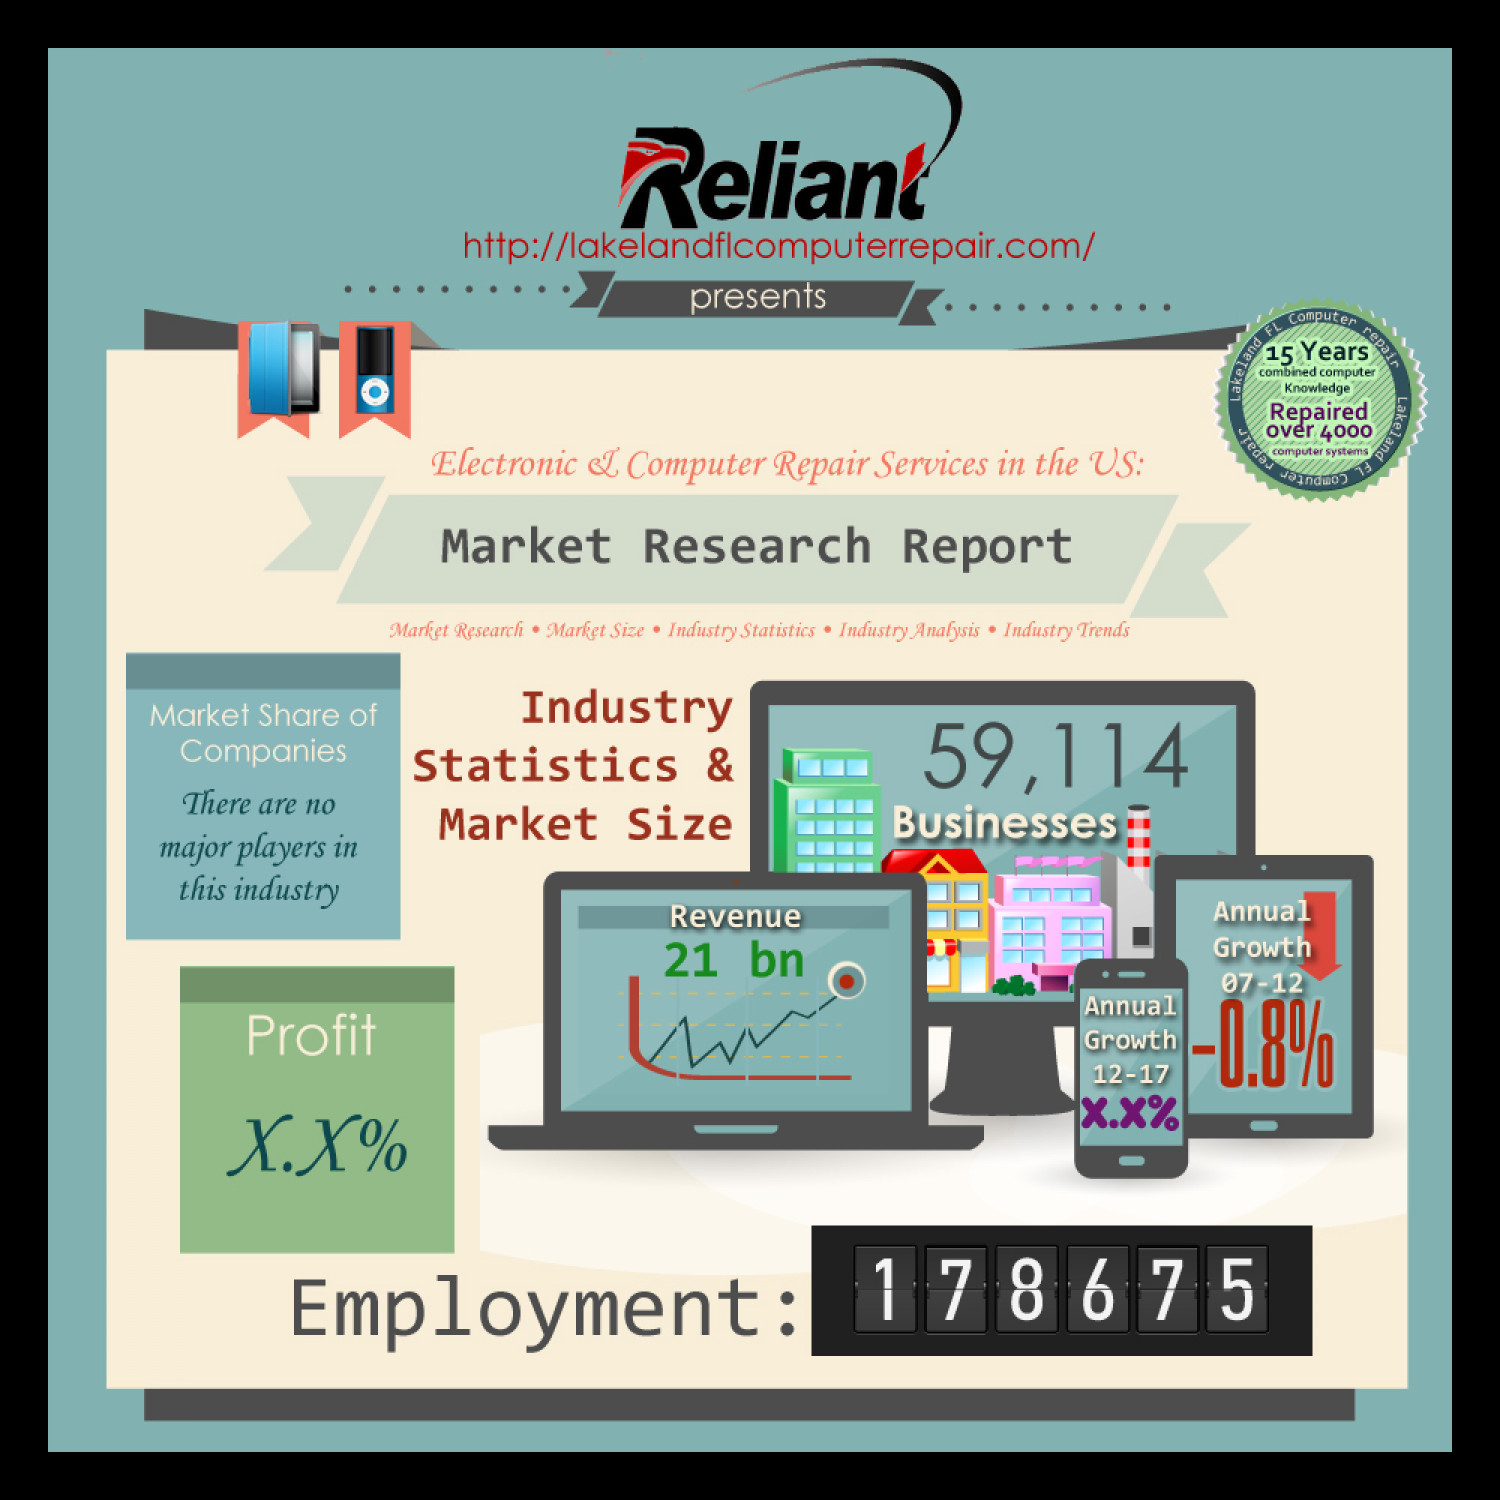 Computer service industry by reliant computer services Infographic